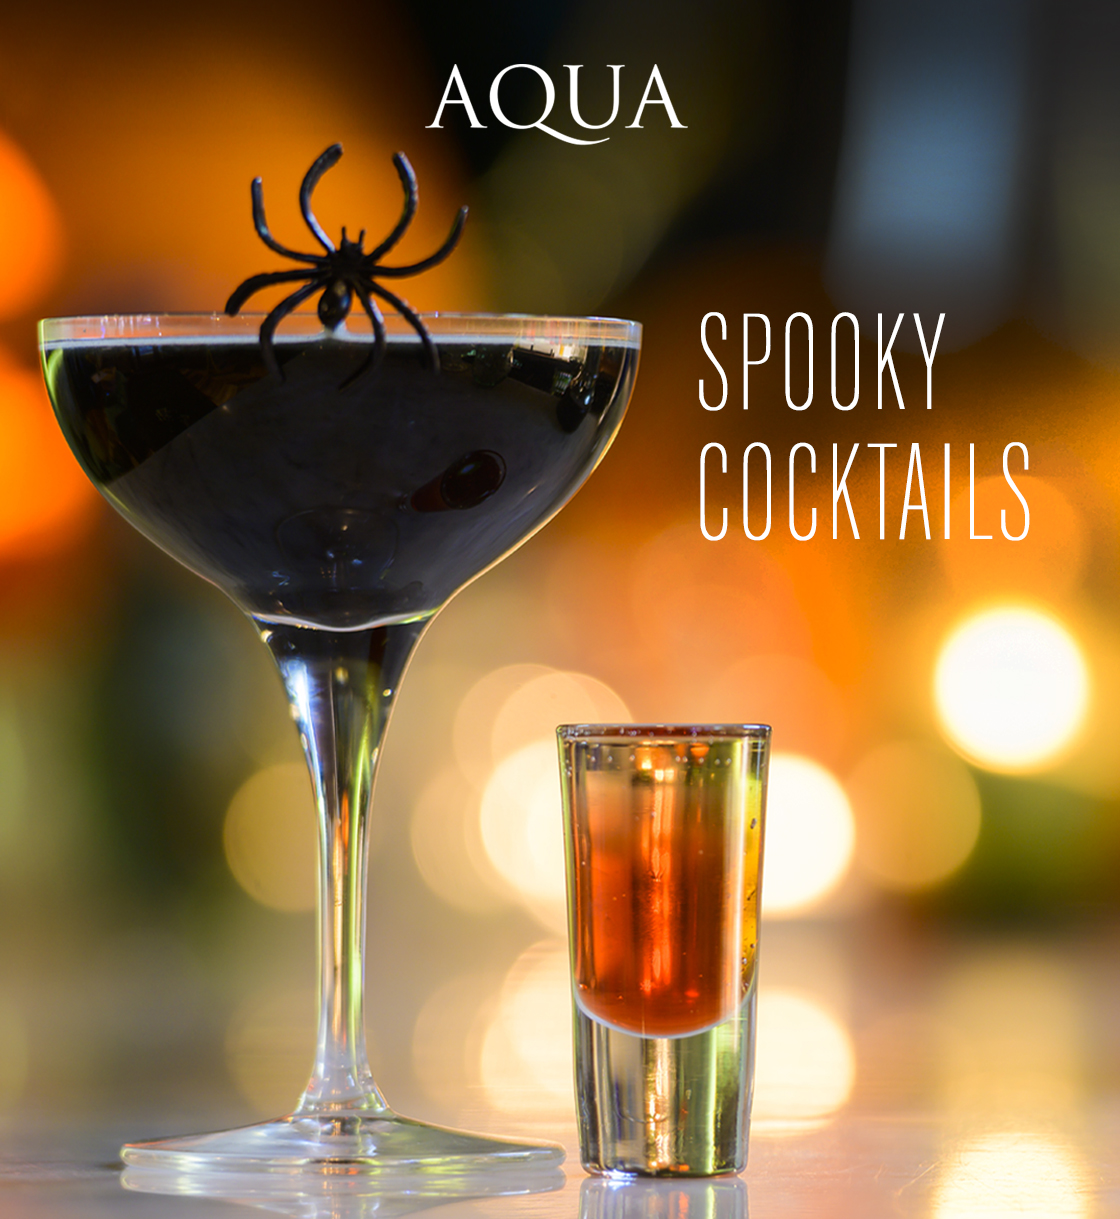 2 For 1 on AQUA'S Spooky Cocktails